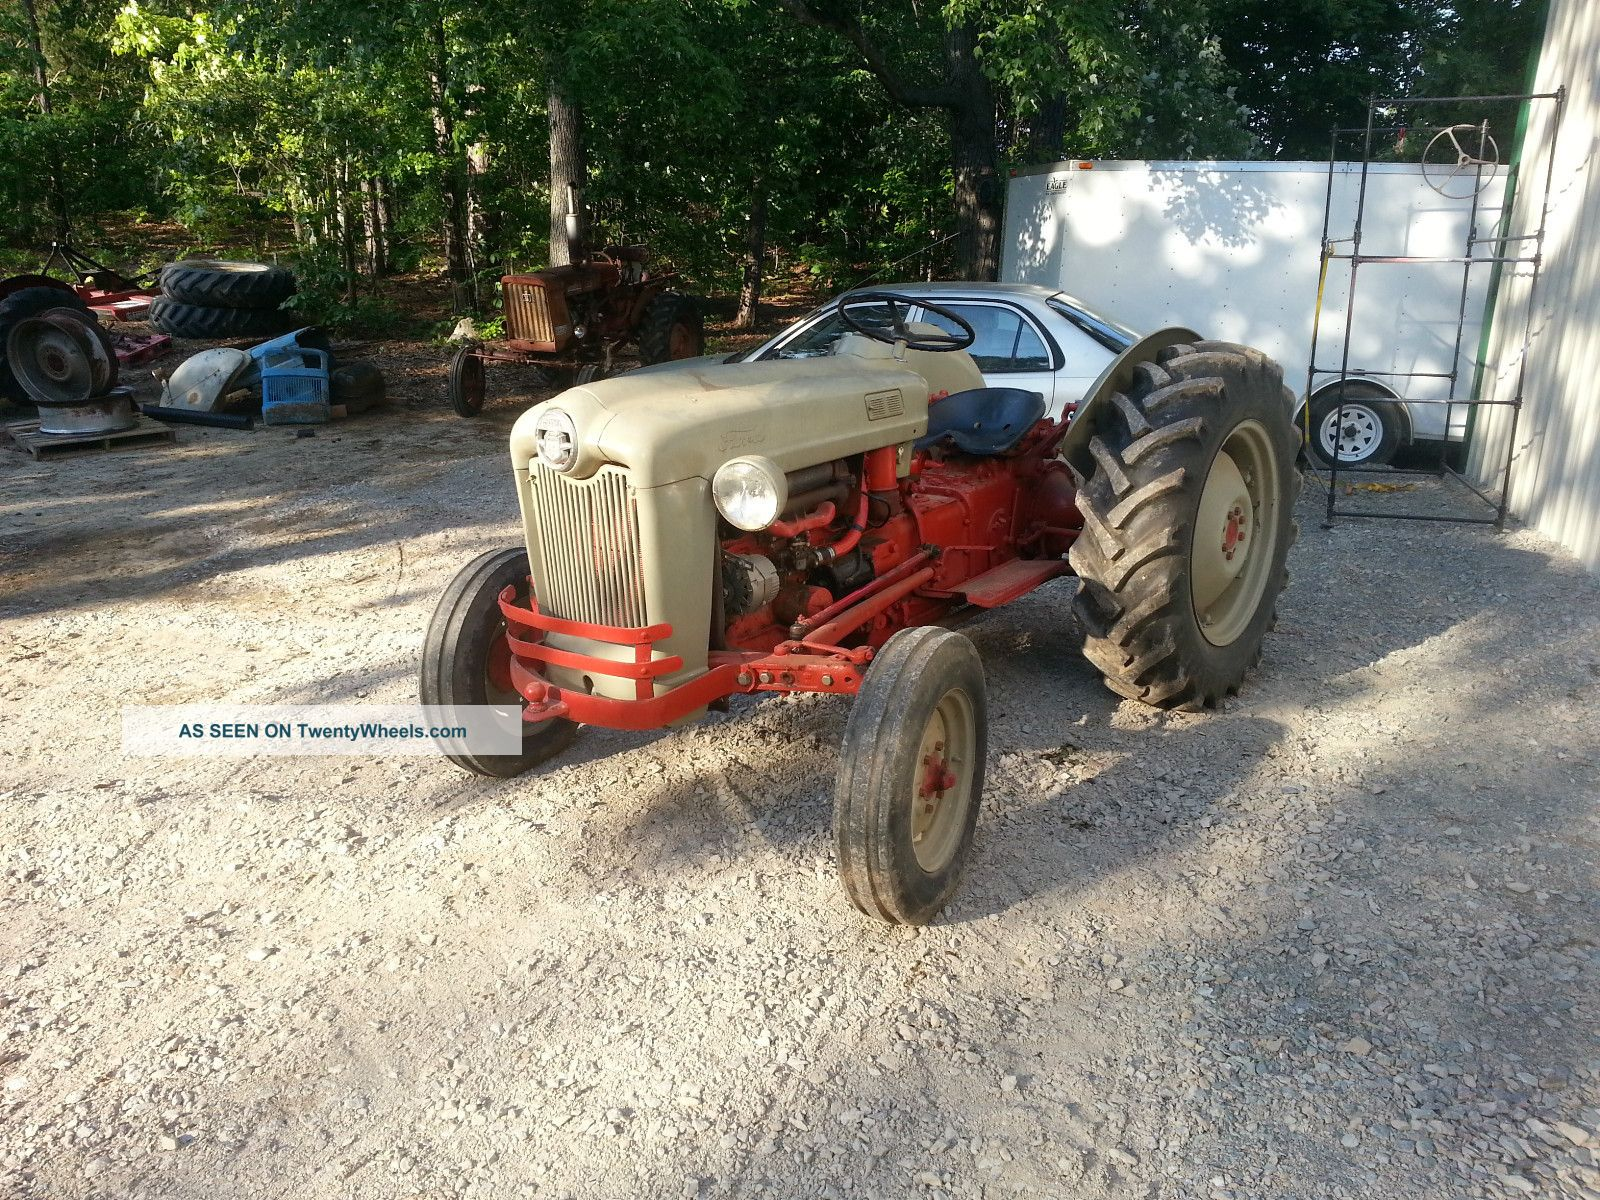 Ford Tractor Identification : Ford tractor identification help